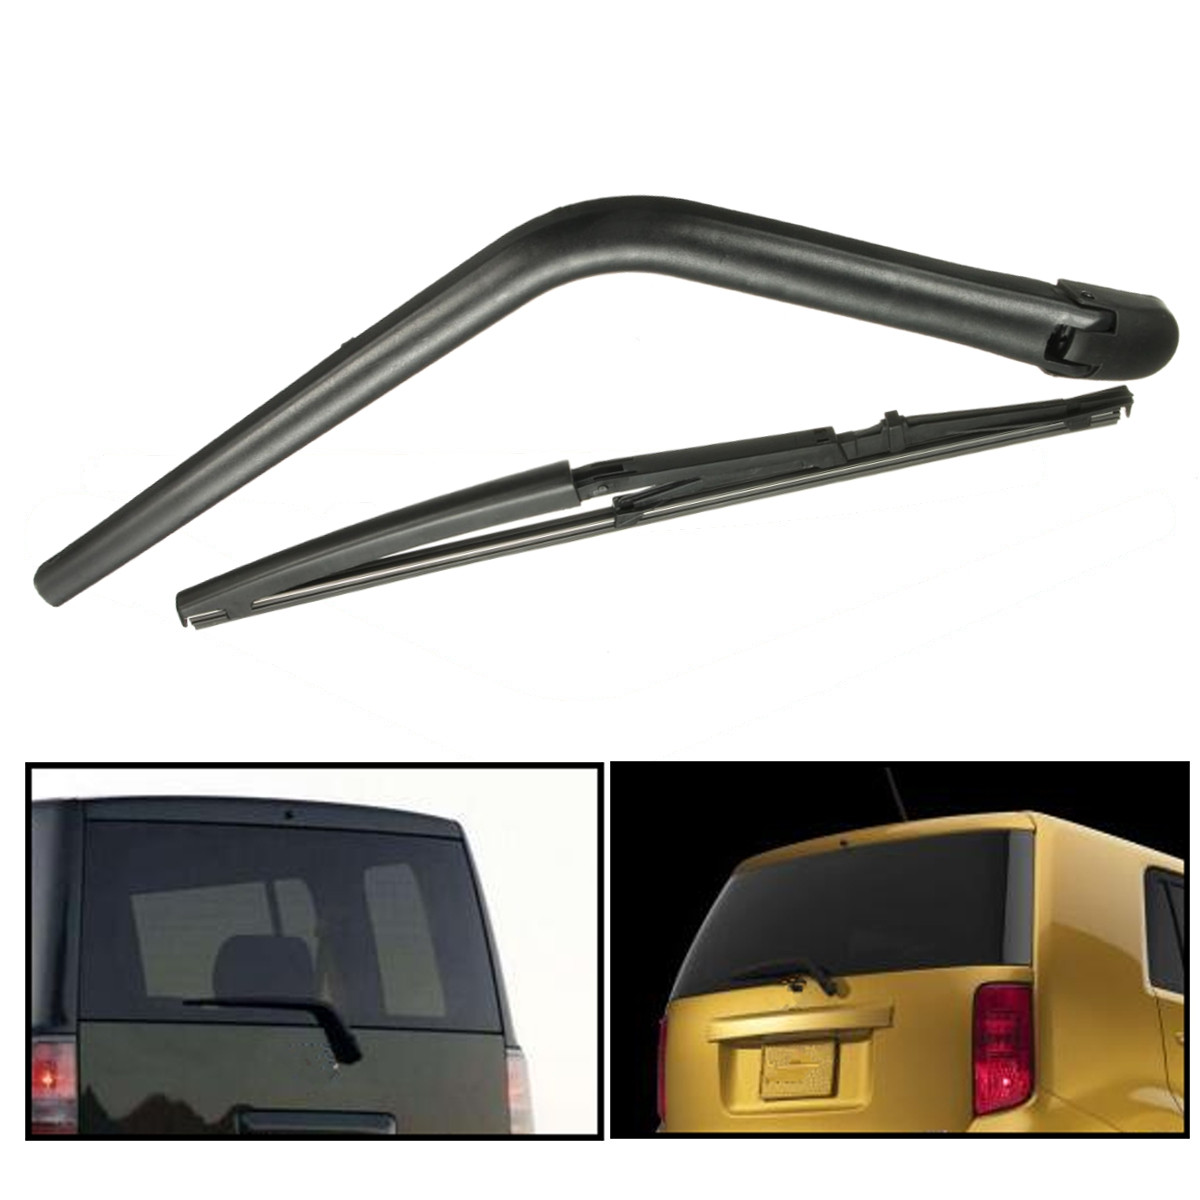 Rear Window Windscreen Windshield Wiper Blade + Arm Set For 2004-2006 Scion XB EKXB03RW MATCC US